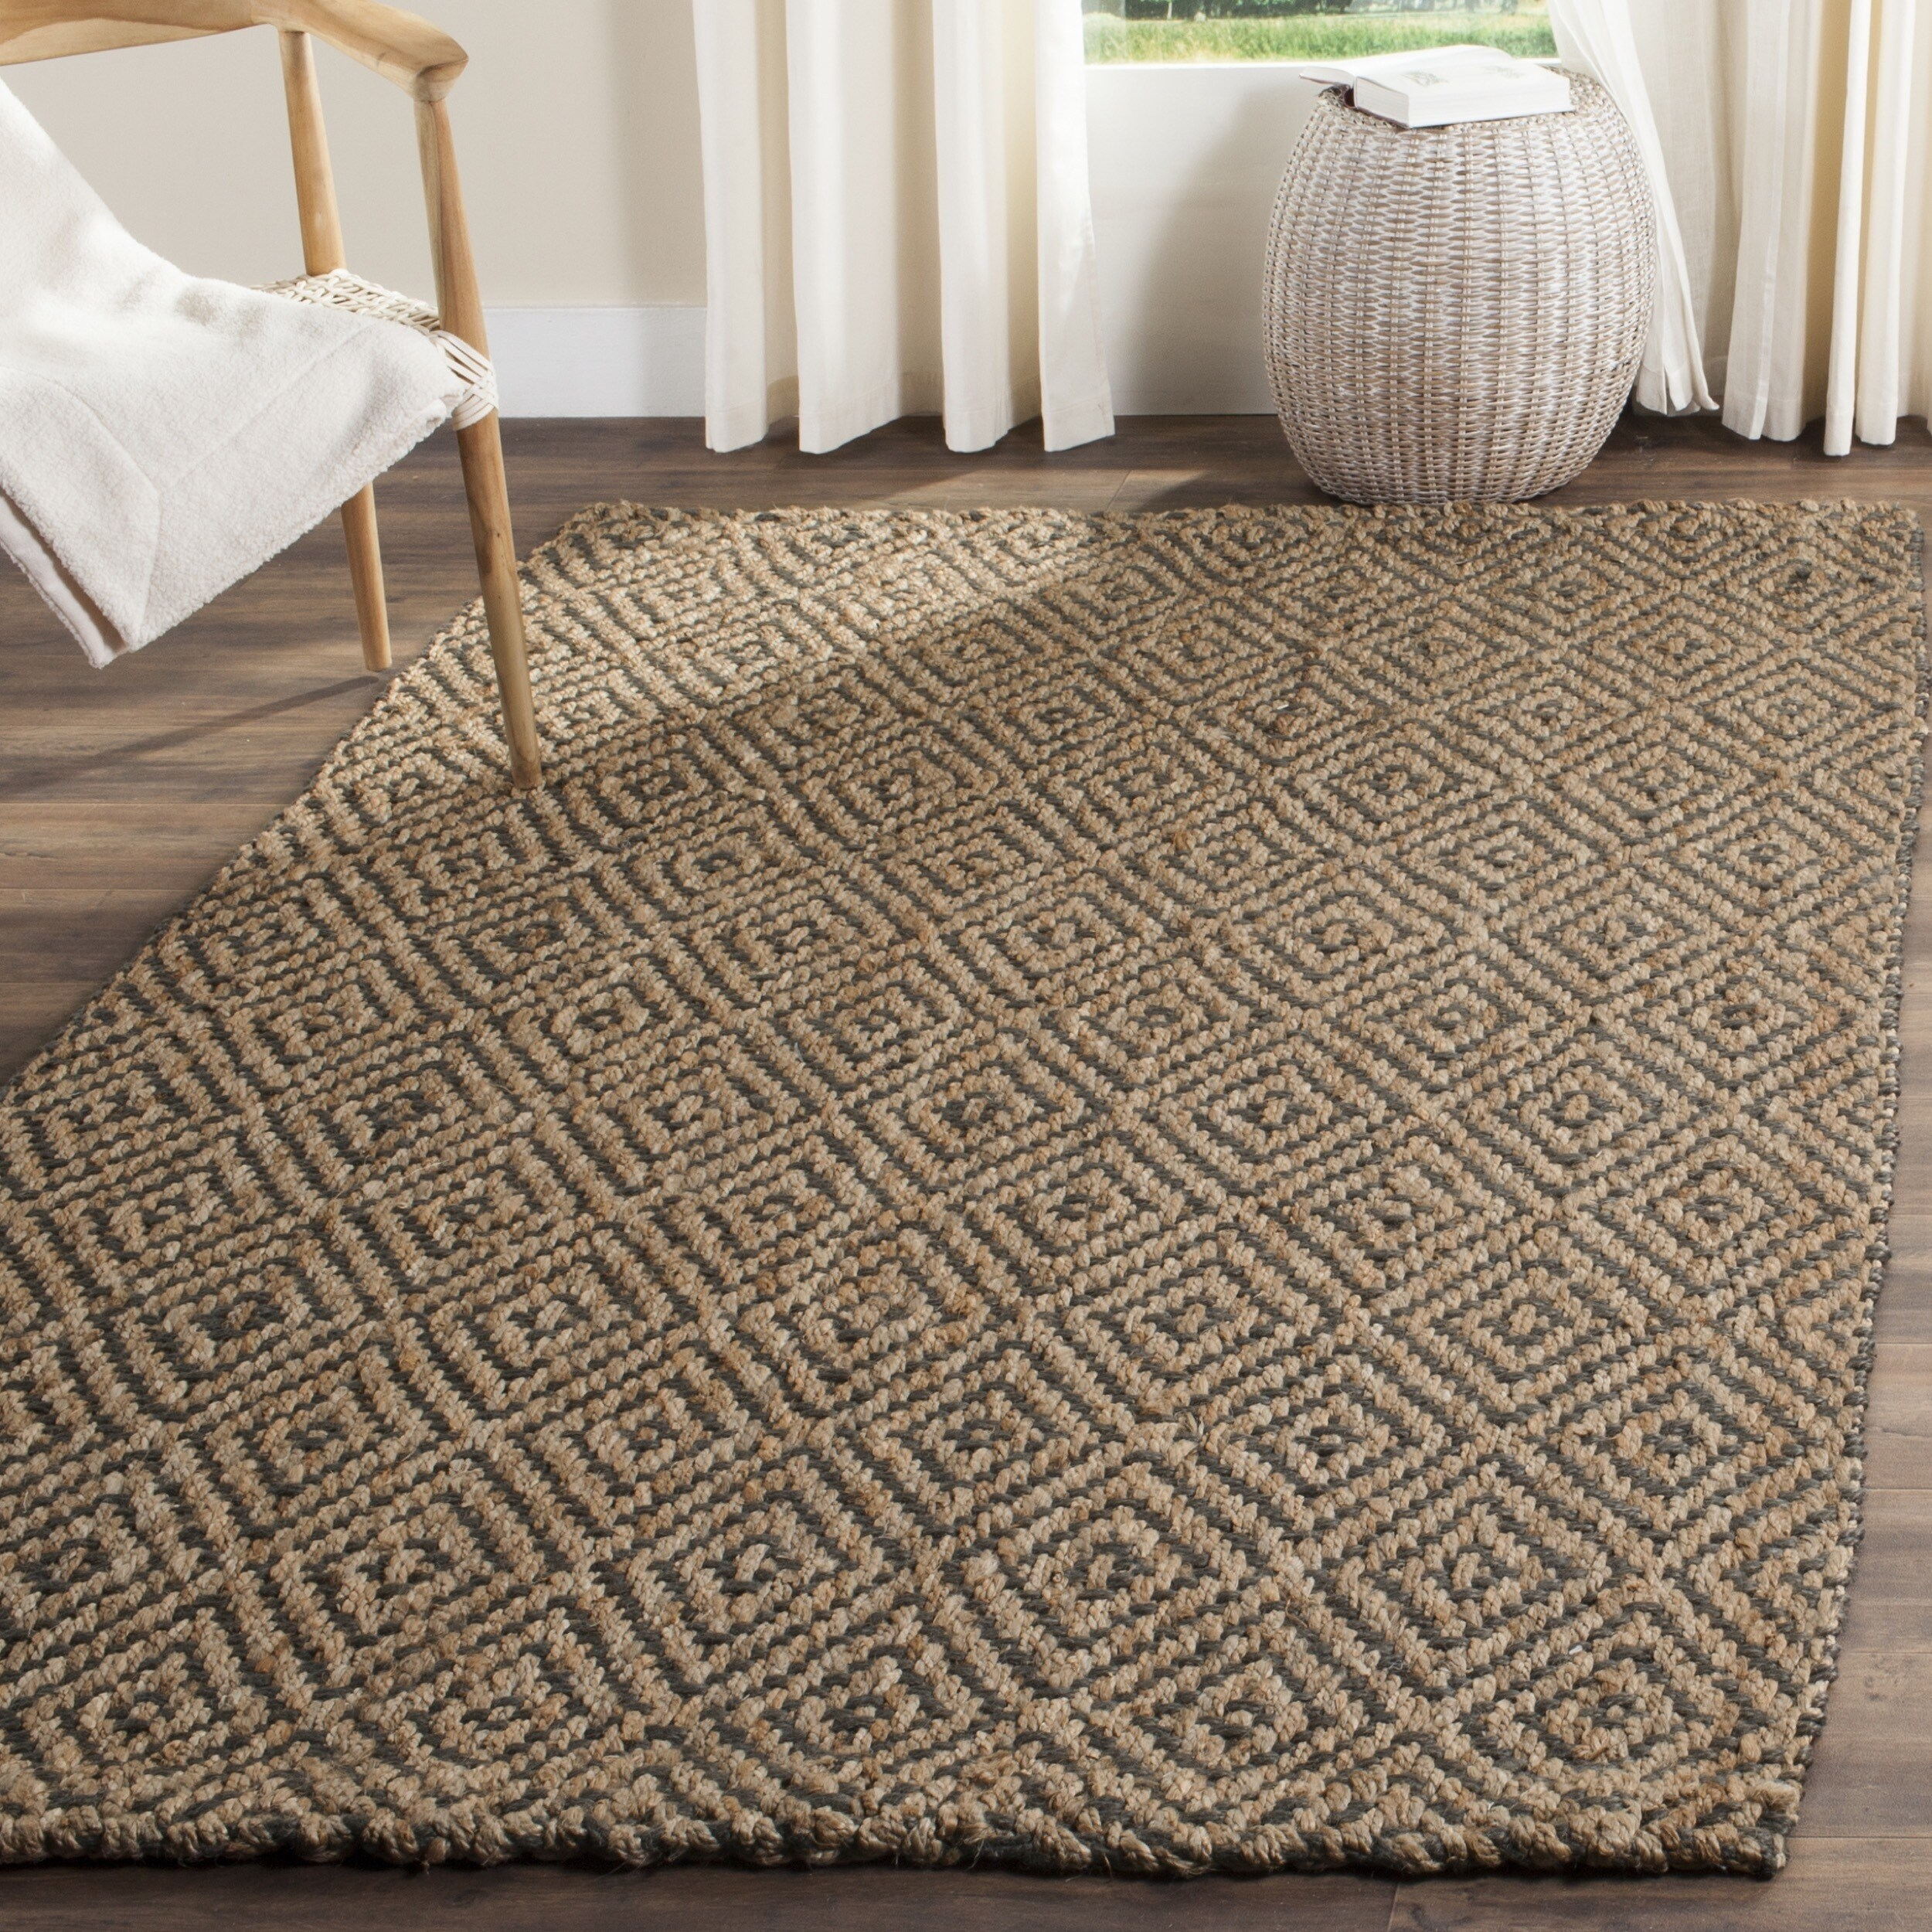 hand products rug laird loomed wide border os jute nuloom room